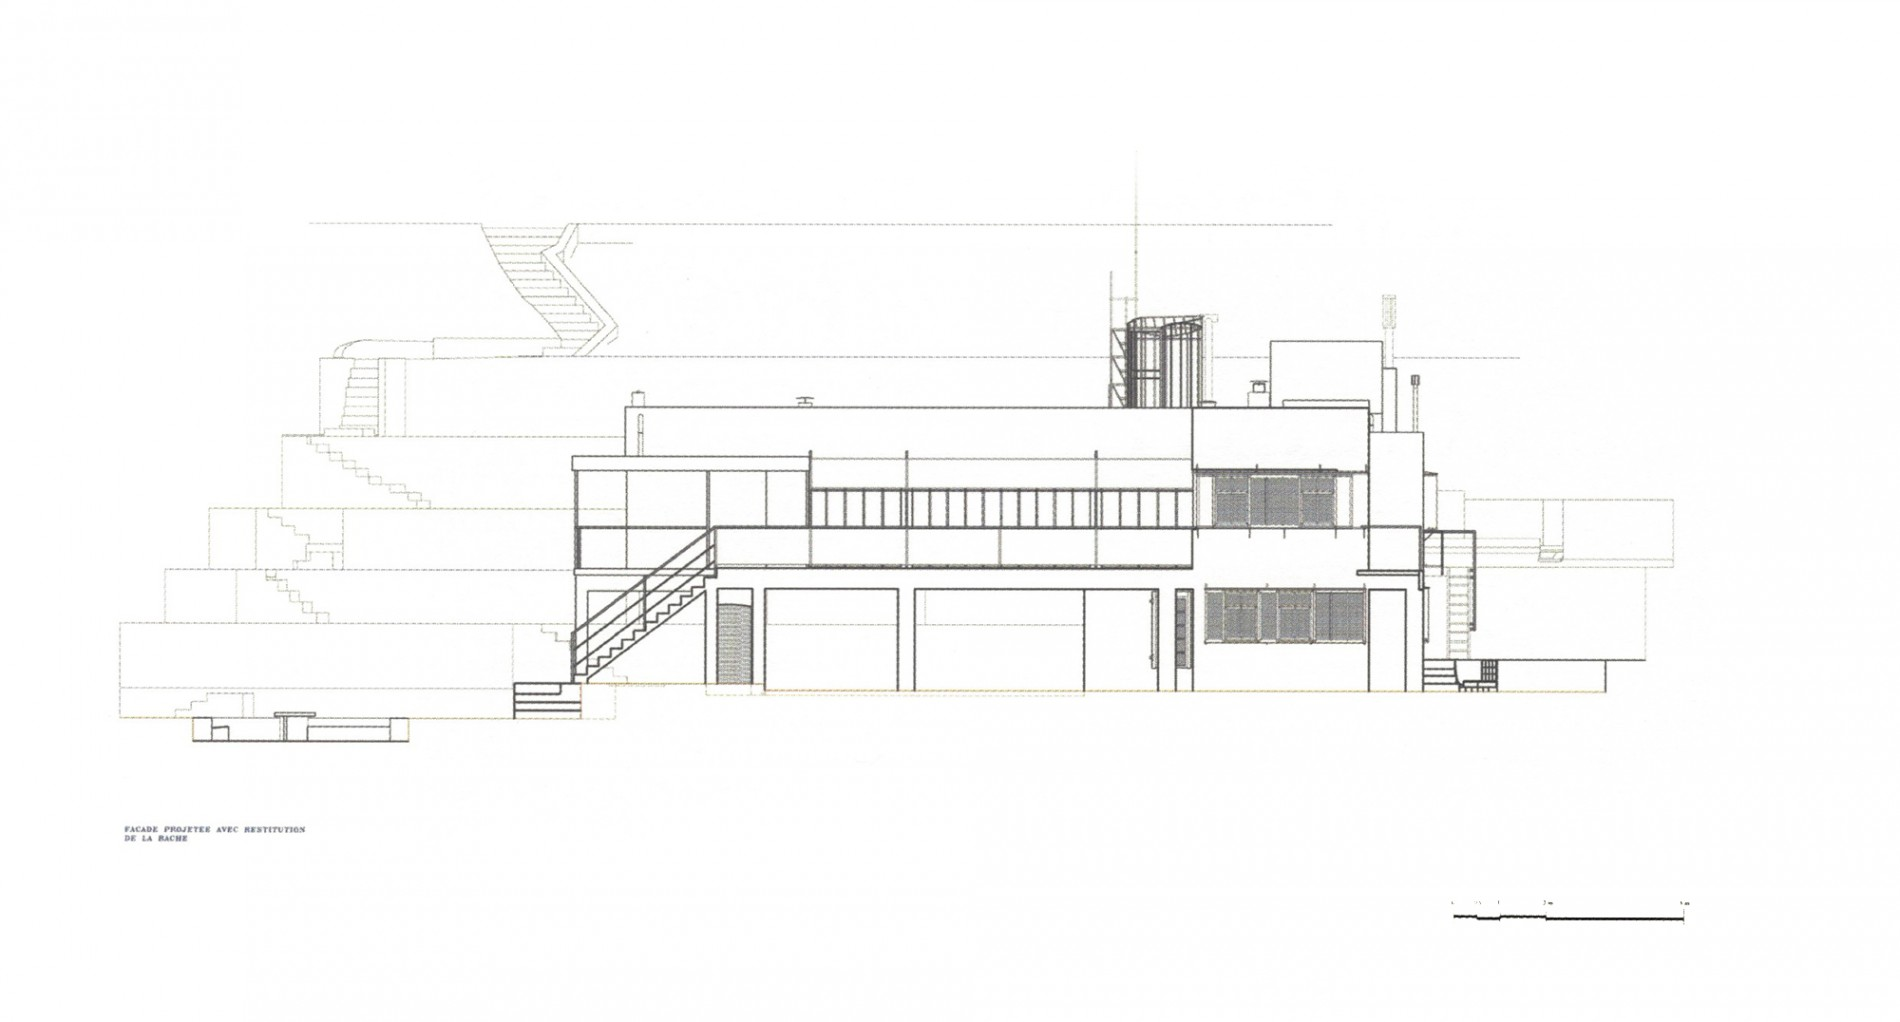 eileen gray e1027 floor plan - photo #18